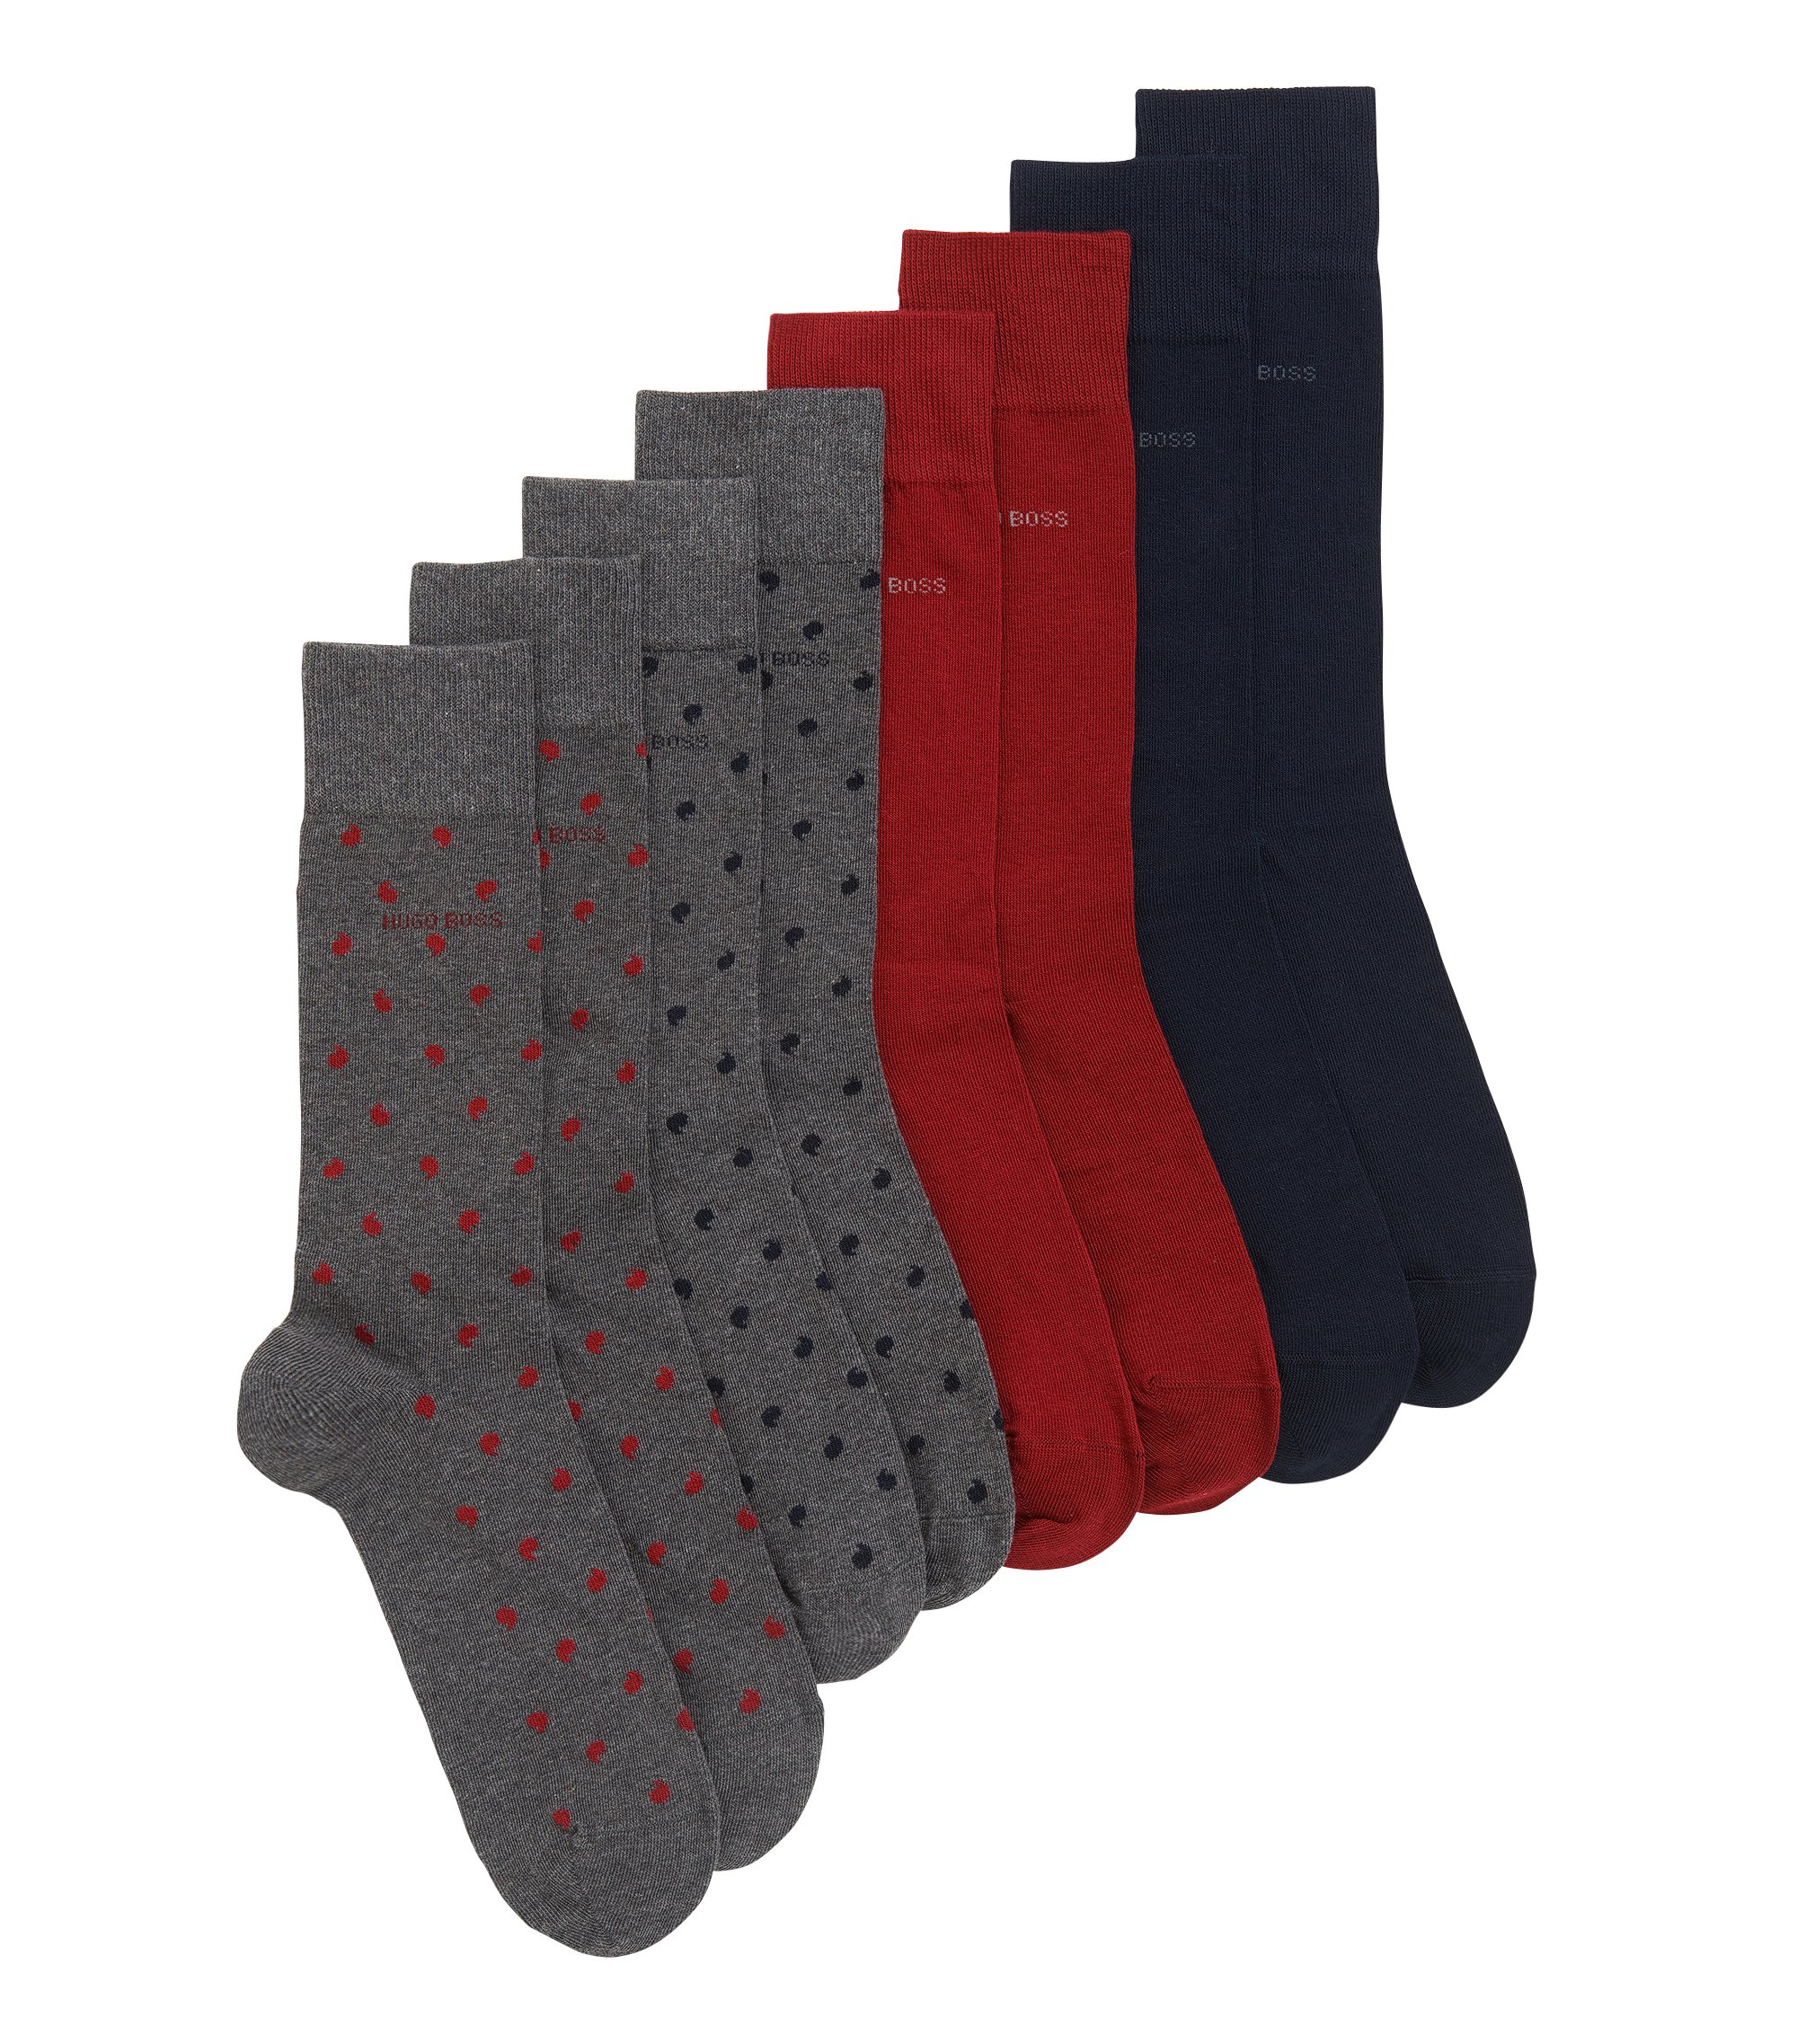 Stretch Cotton Socks Gift Set | 4P RS Gift Set US CC, Dark Blue